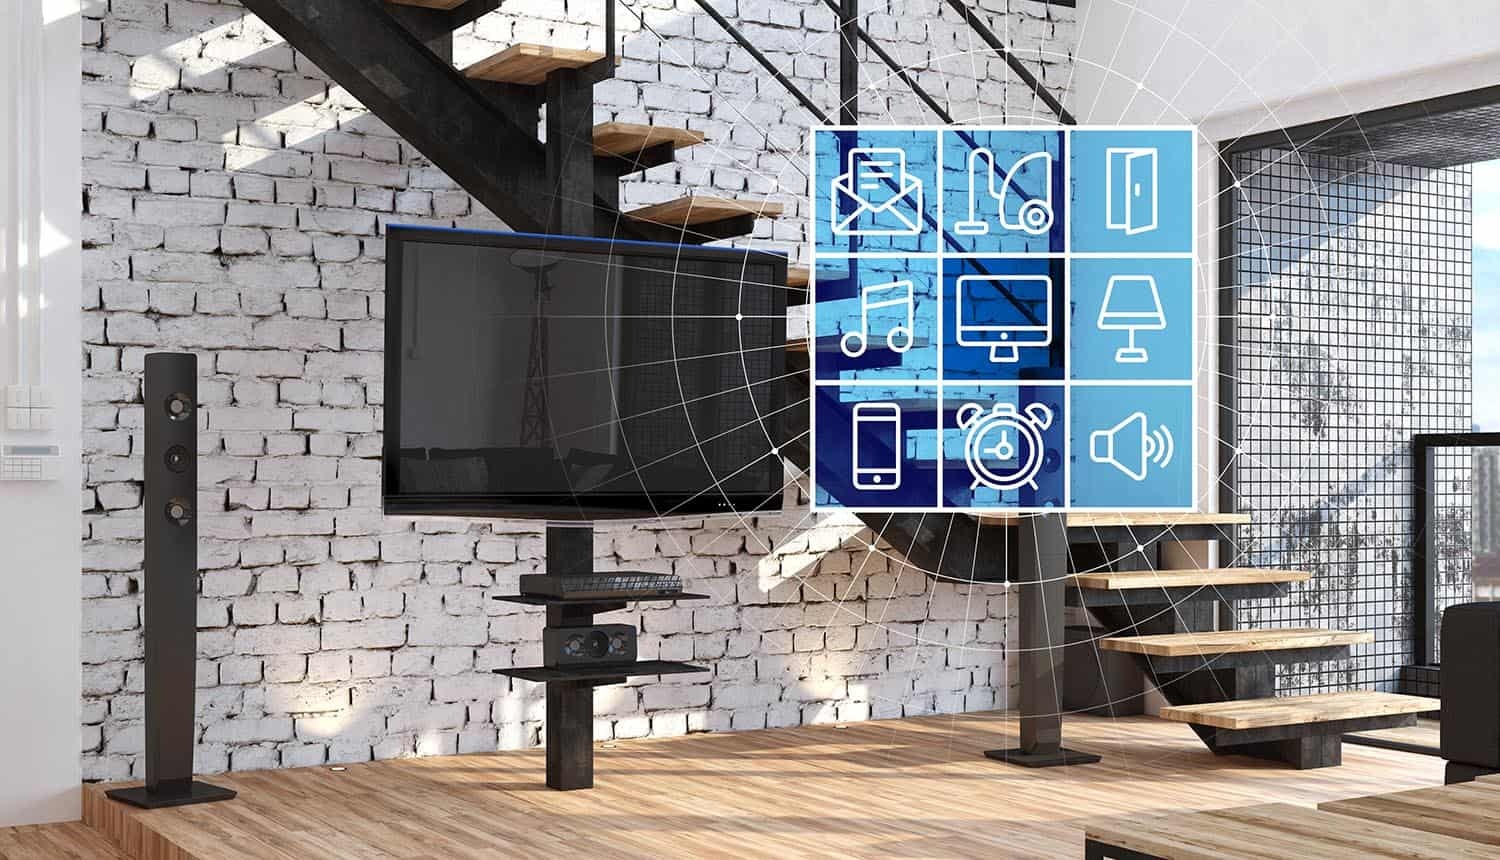 Living area in modern loft with smart devices showing new IoT security ratings